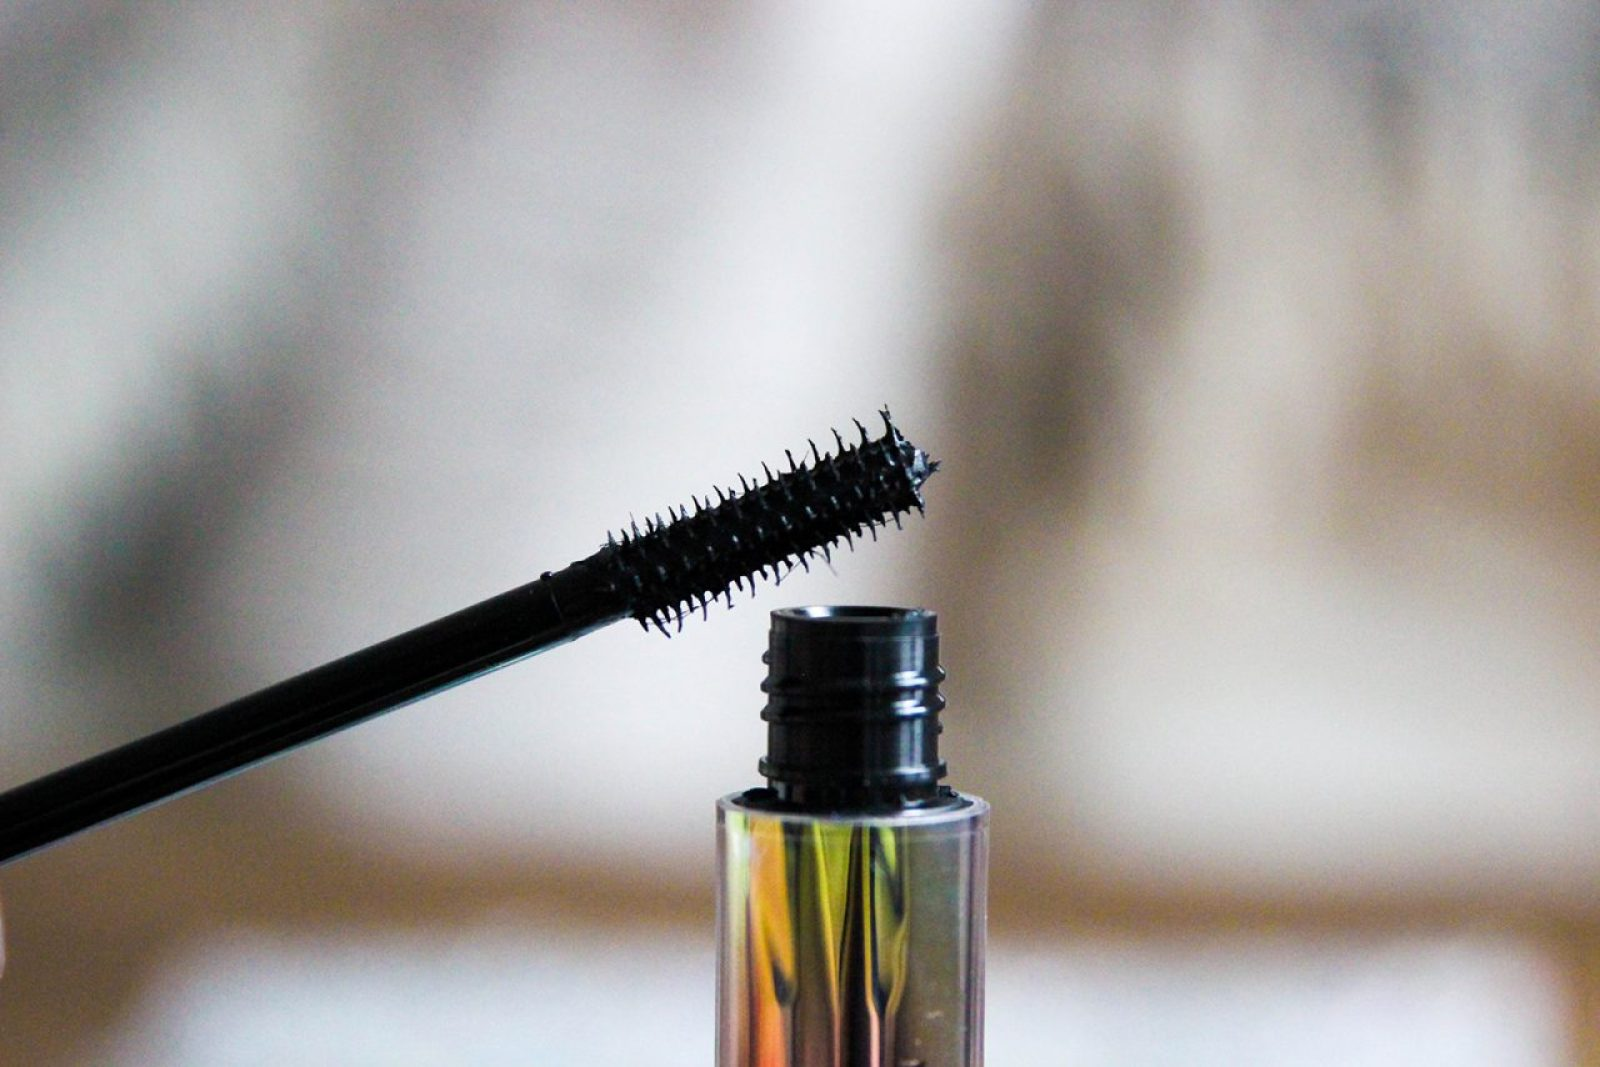 URBAN DECAY Troublemaker Mascara-18